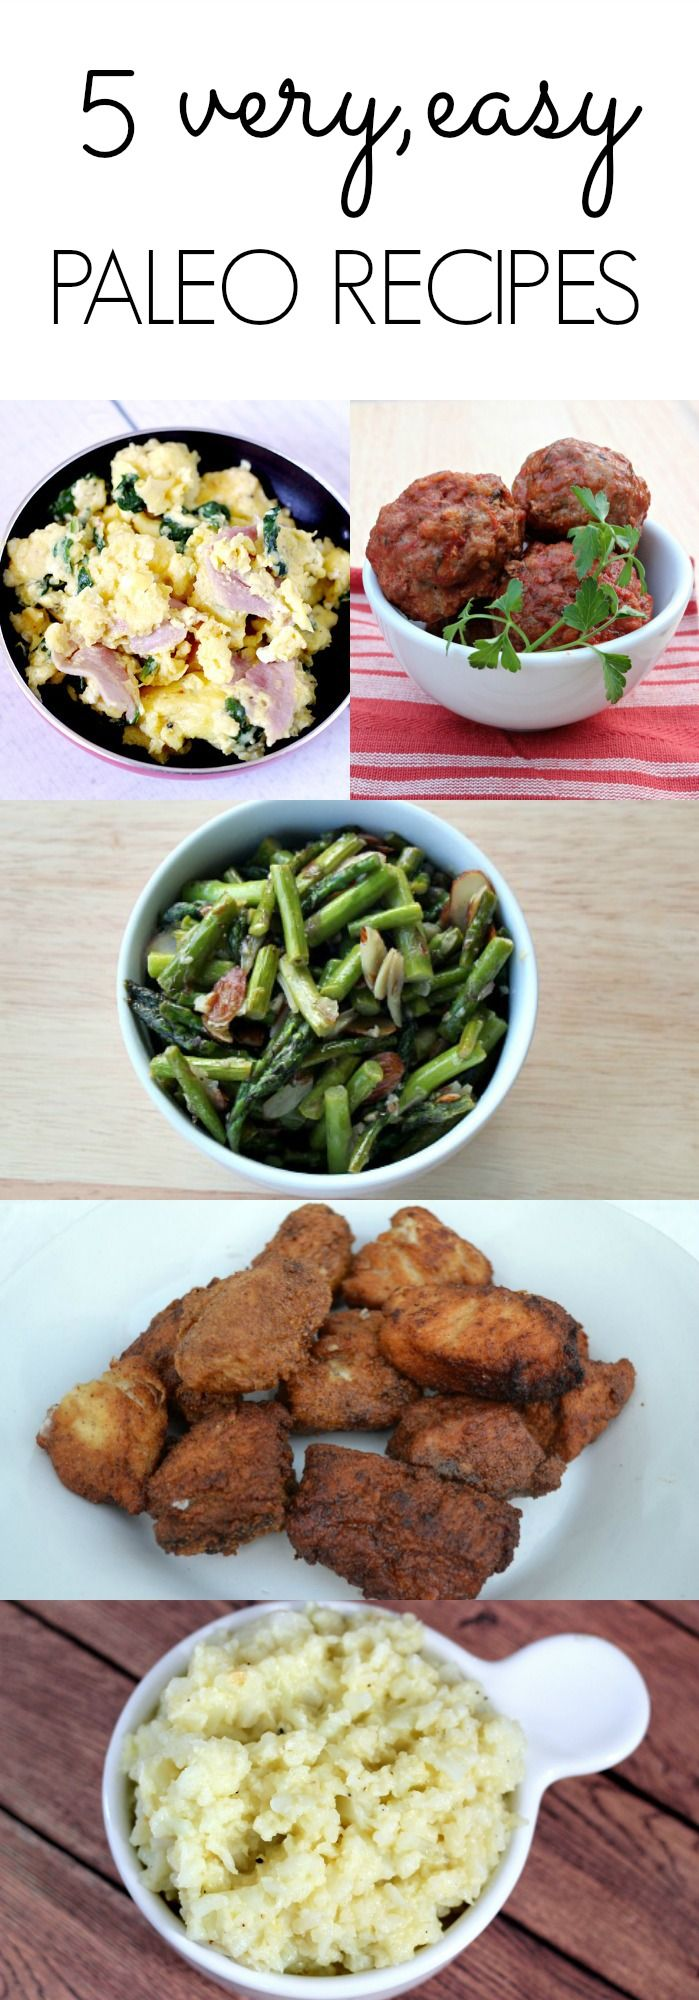 5 Easy Paleo Recipes from 2013 - Bravo For Paleo